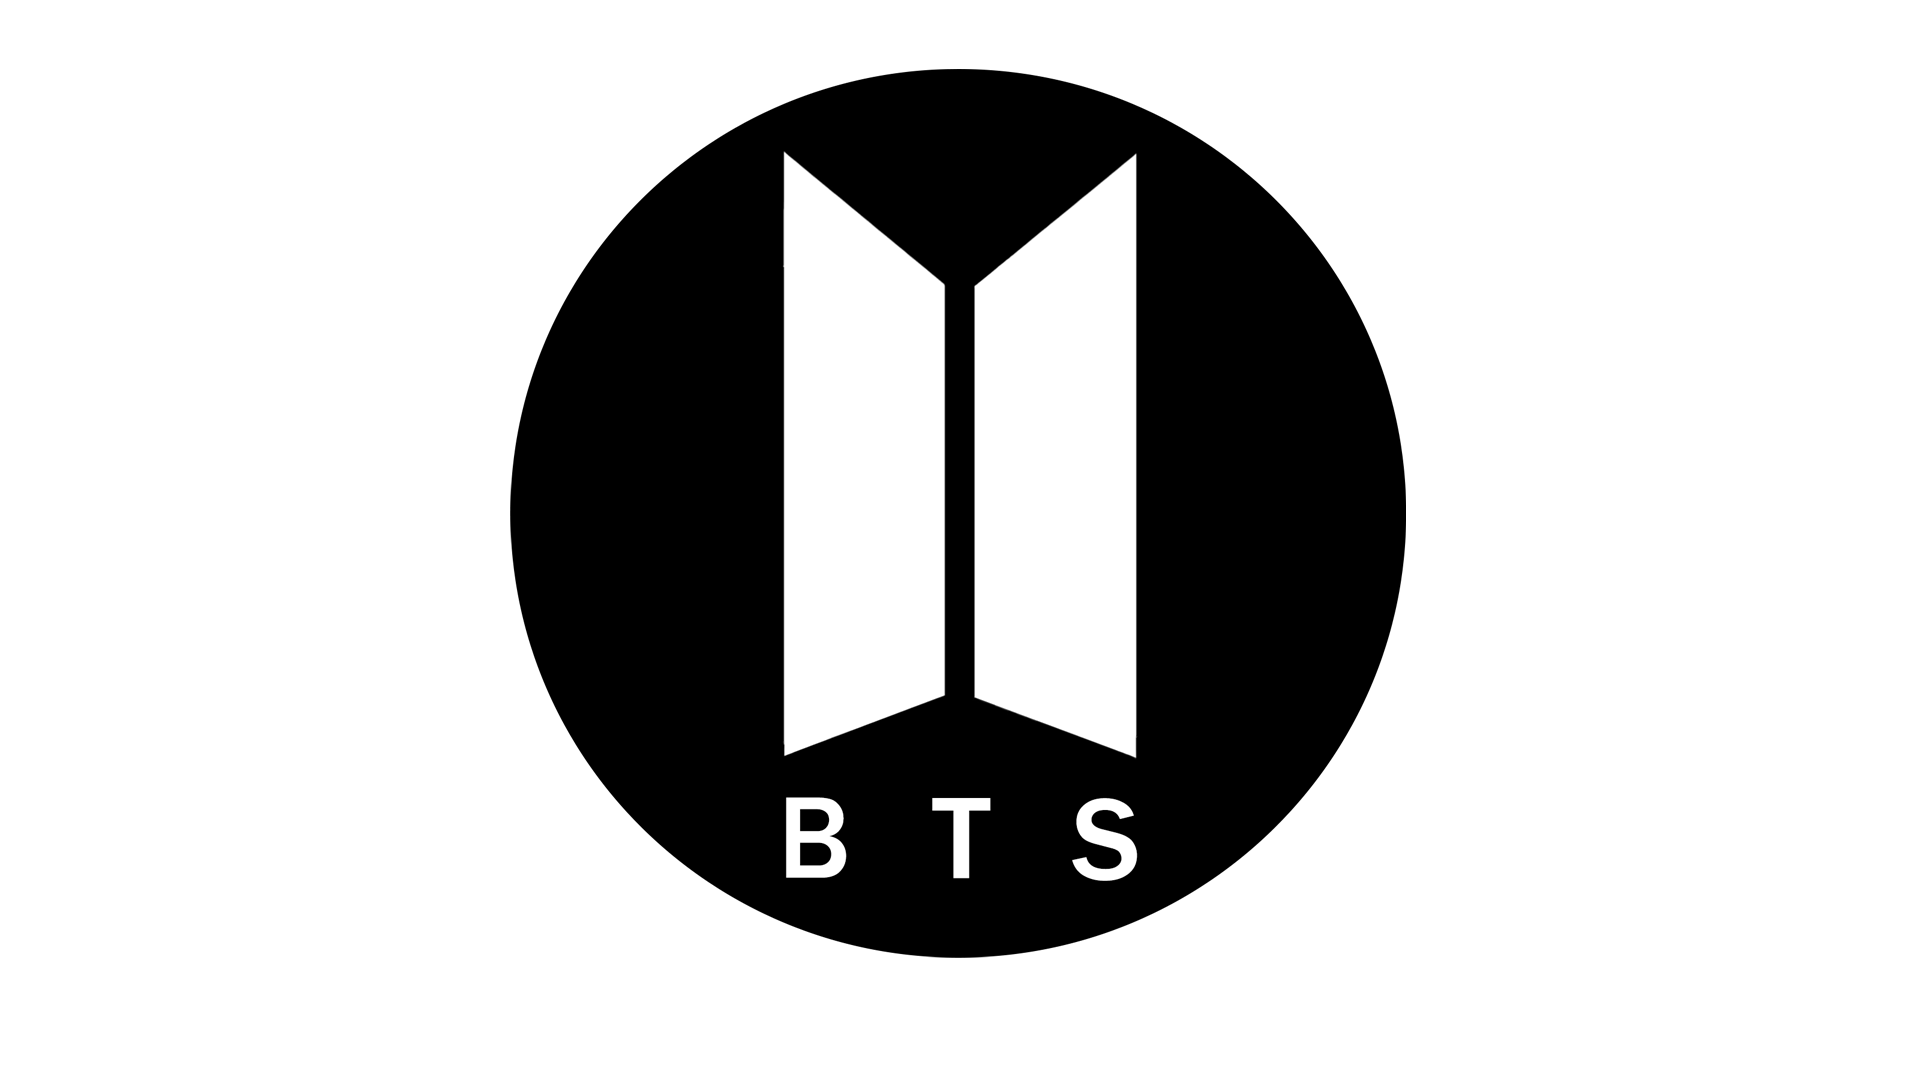 Meaning BTS logo and symbol.